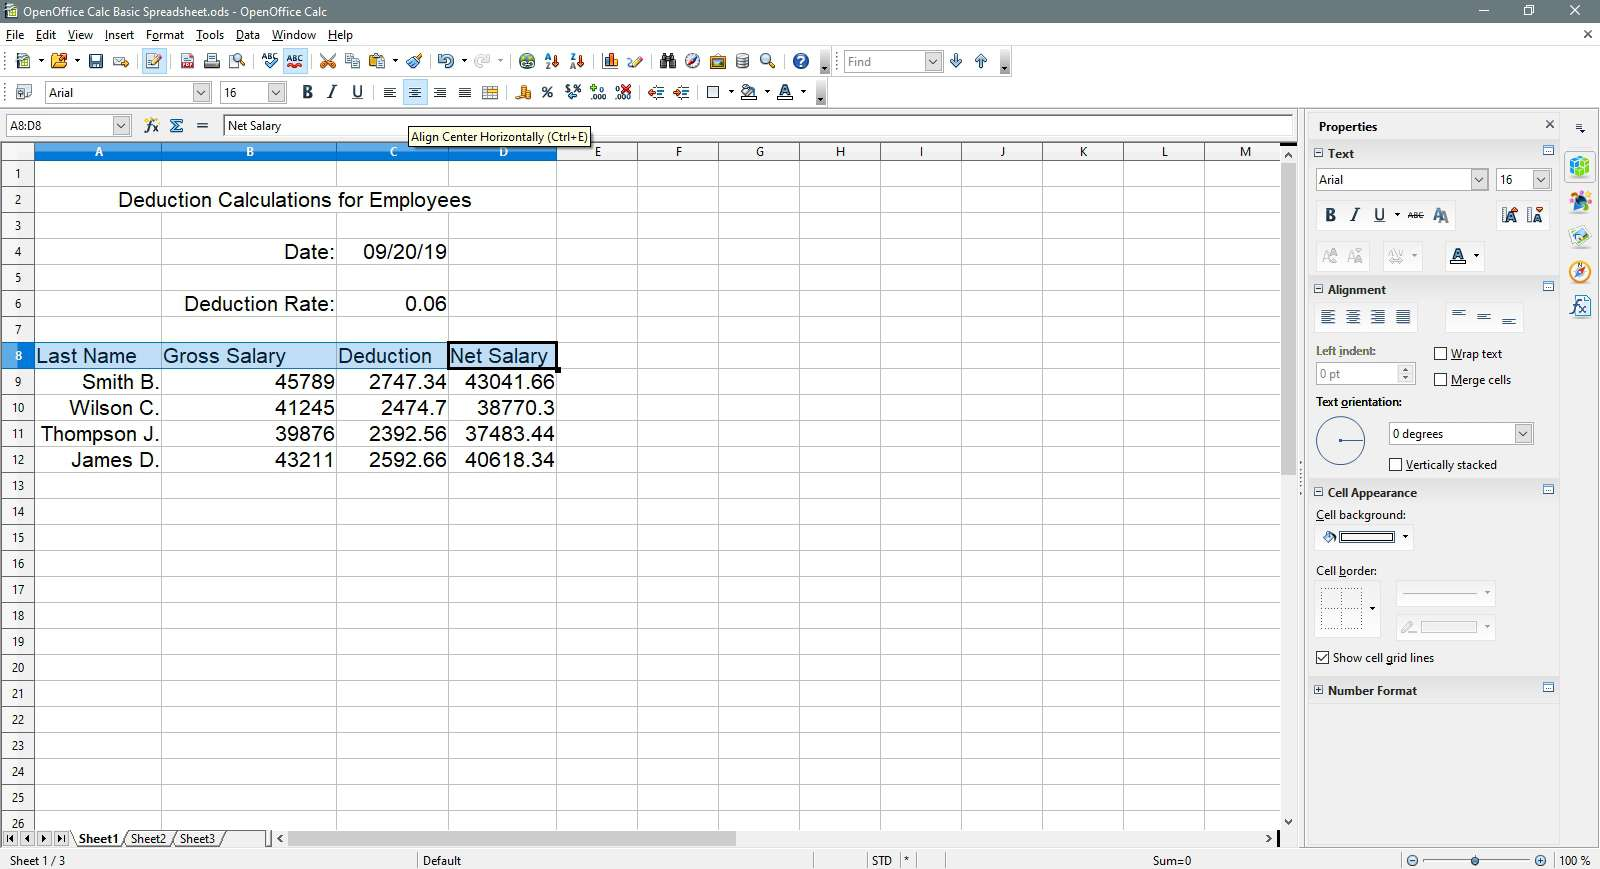 Open Office Calc Basic Spreadsheet Tutorial